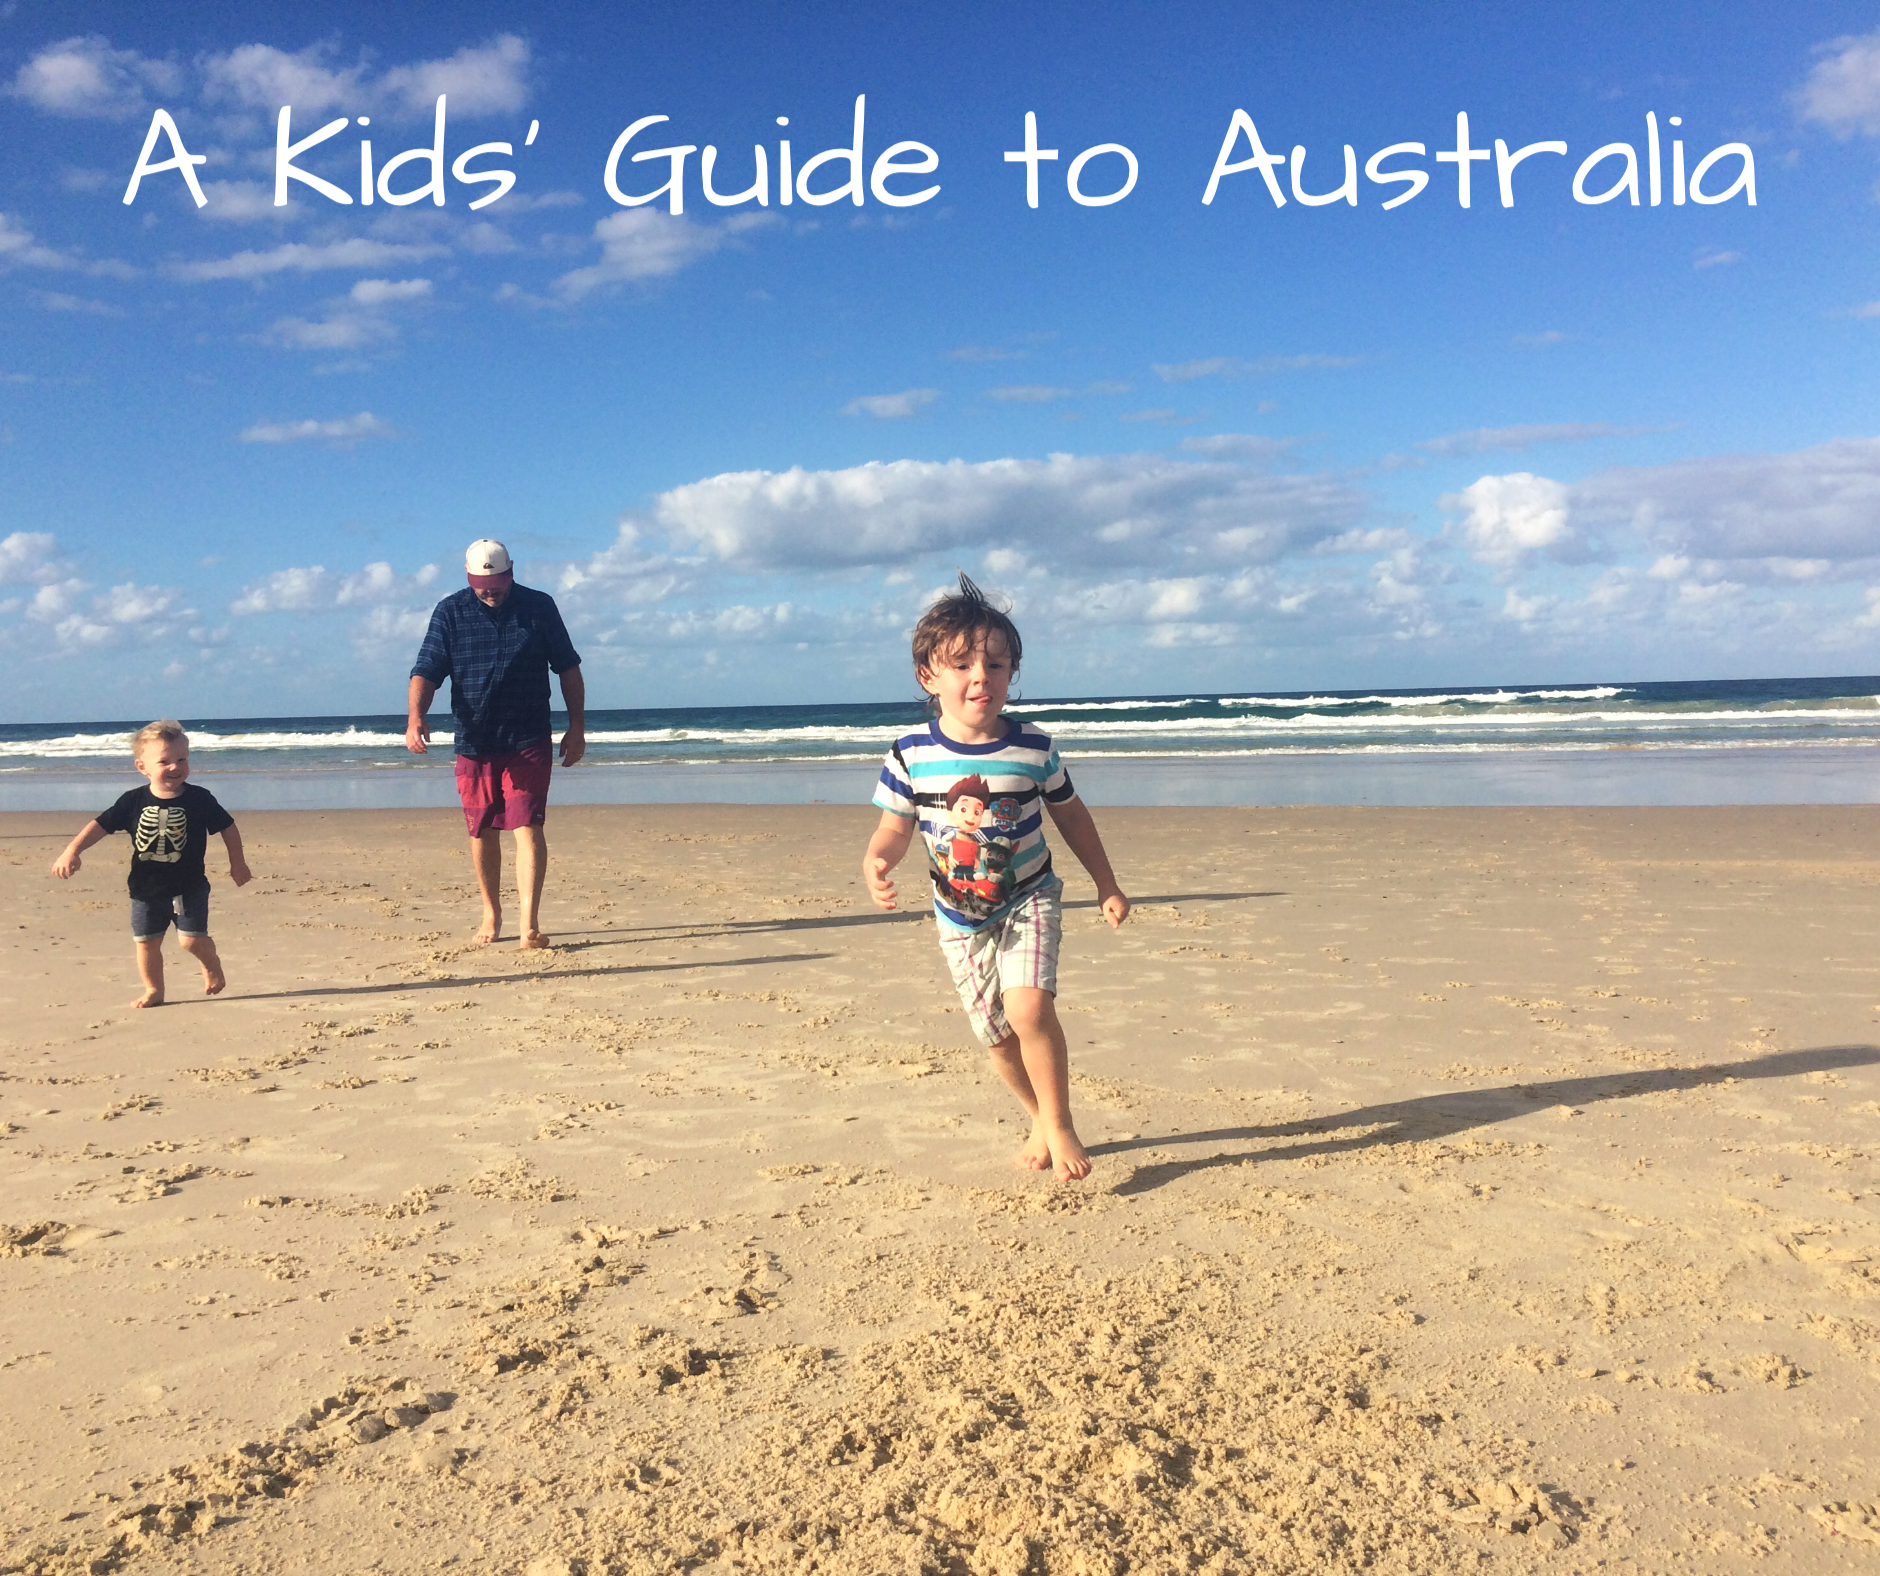 A Kids' Guide to Australia